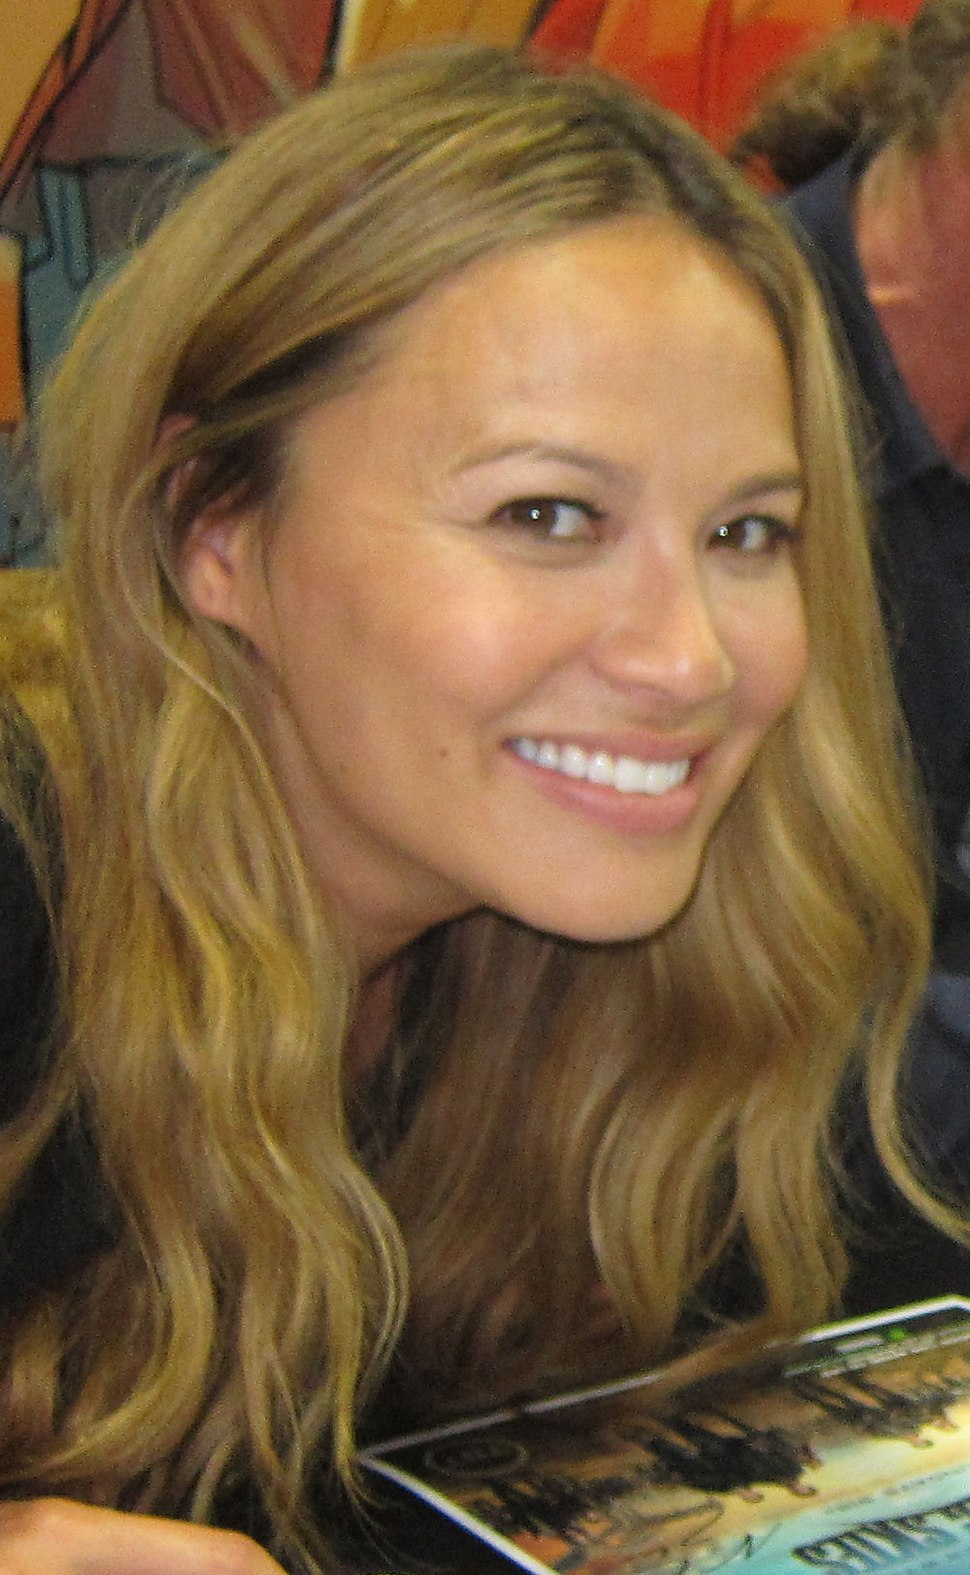 Moon Bloodgood 2012 Dark Horse Comics booth (cropped)